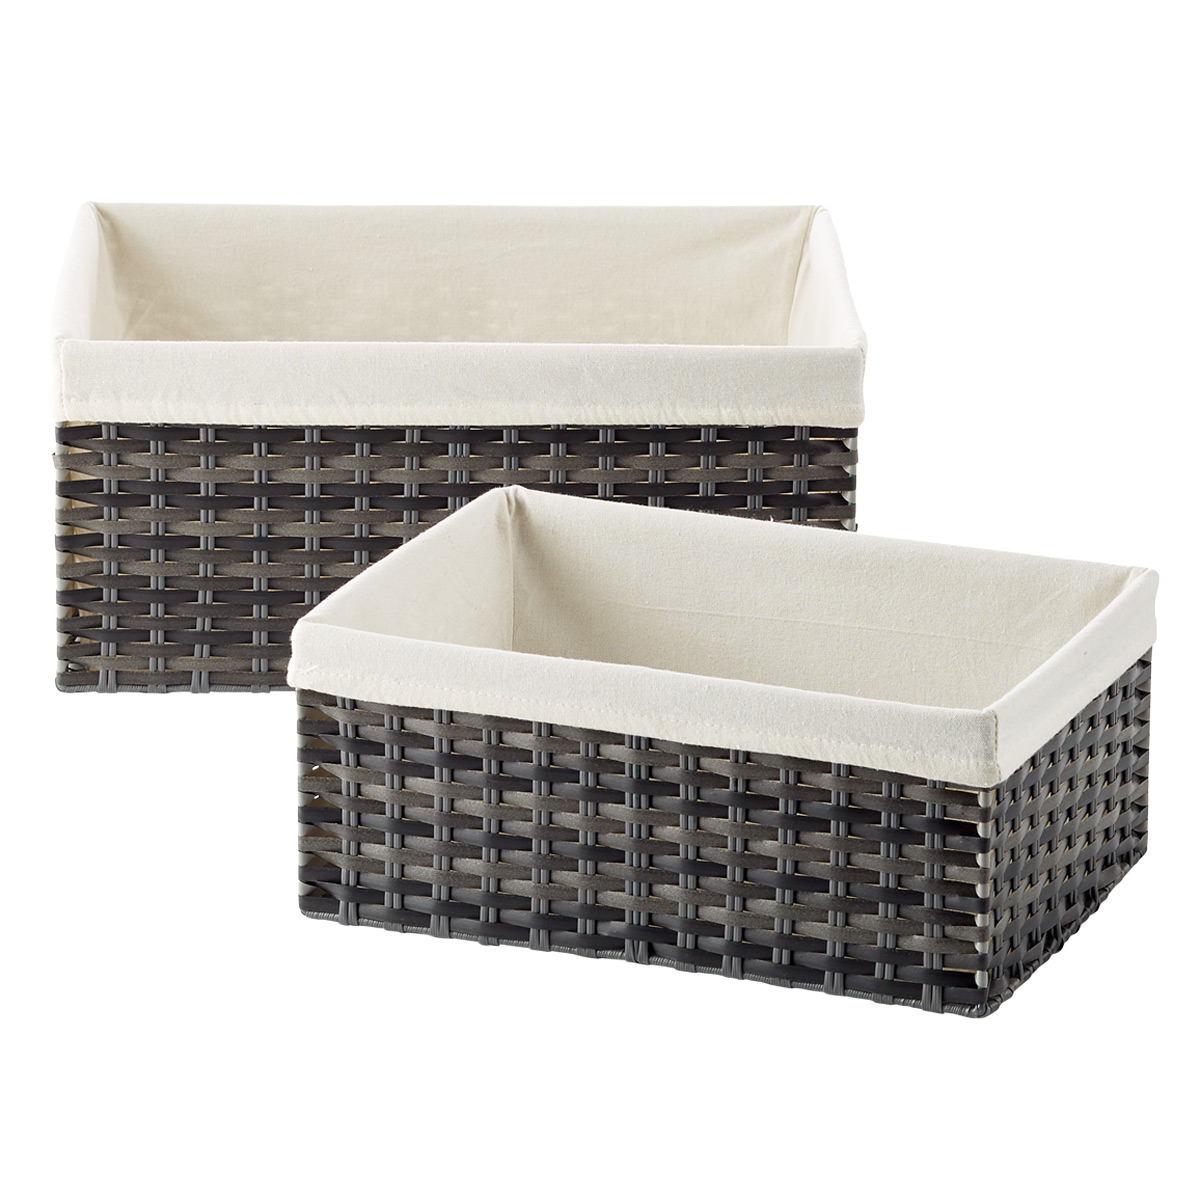 Smoke Montauk Woven Rectangular Storage Bins